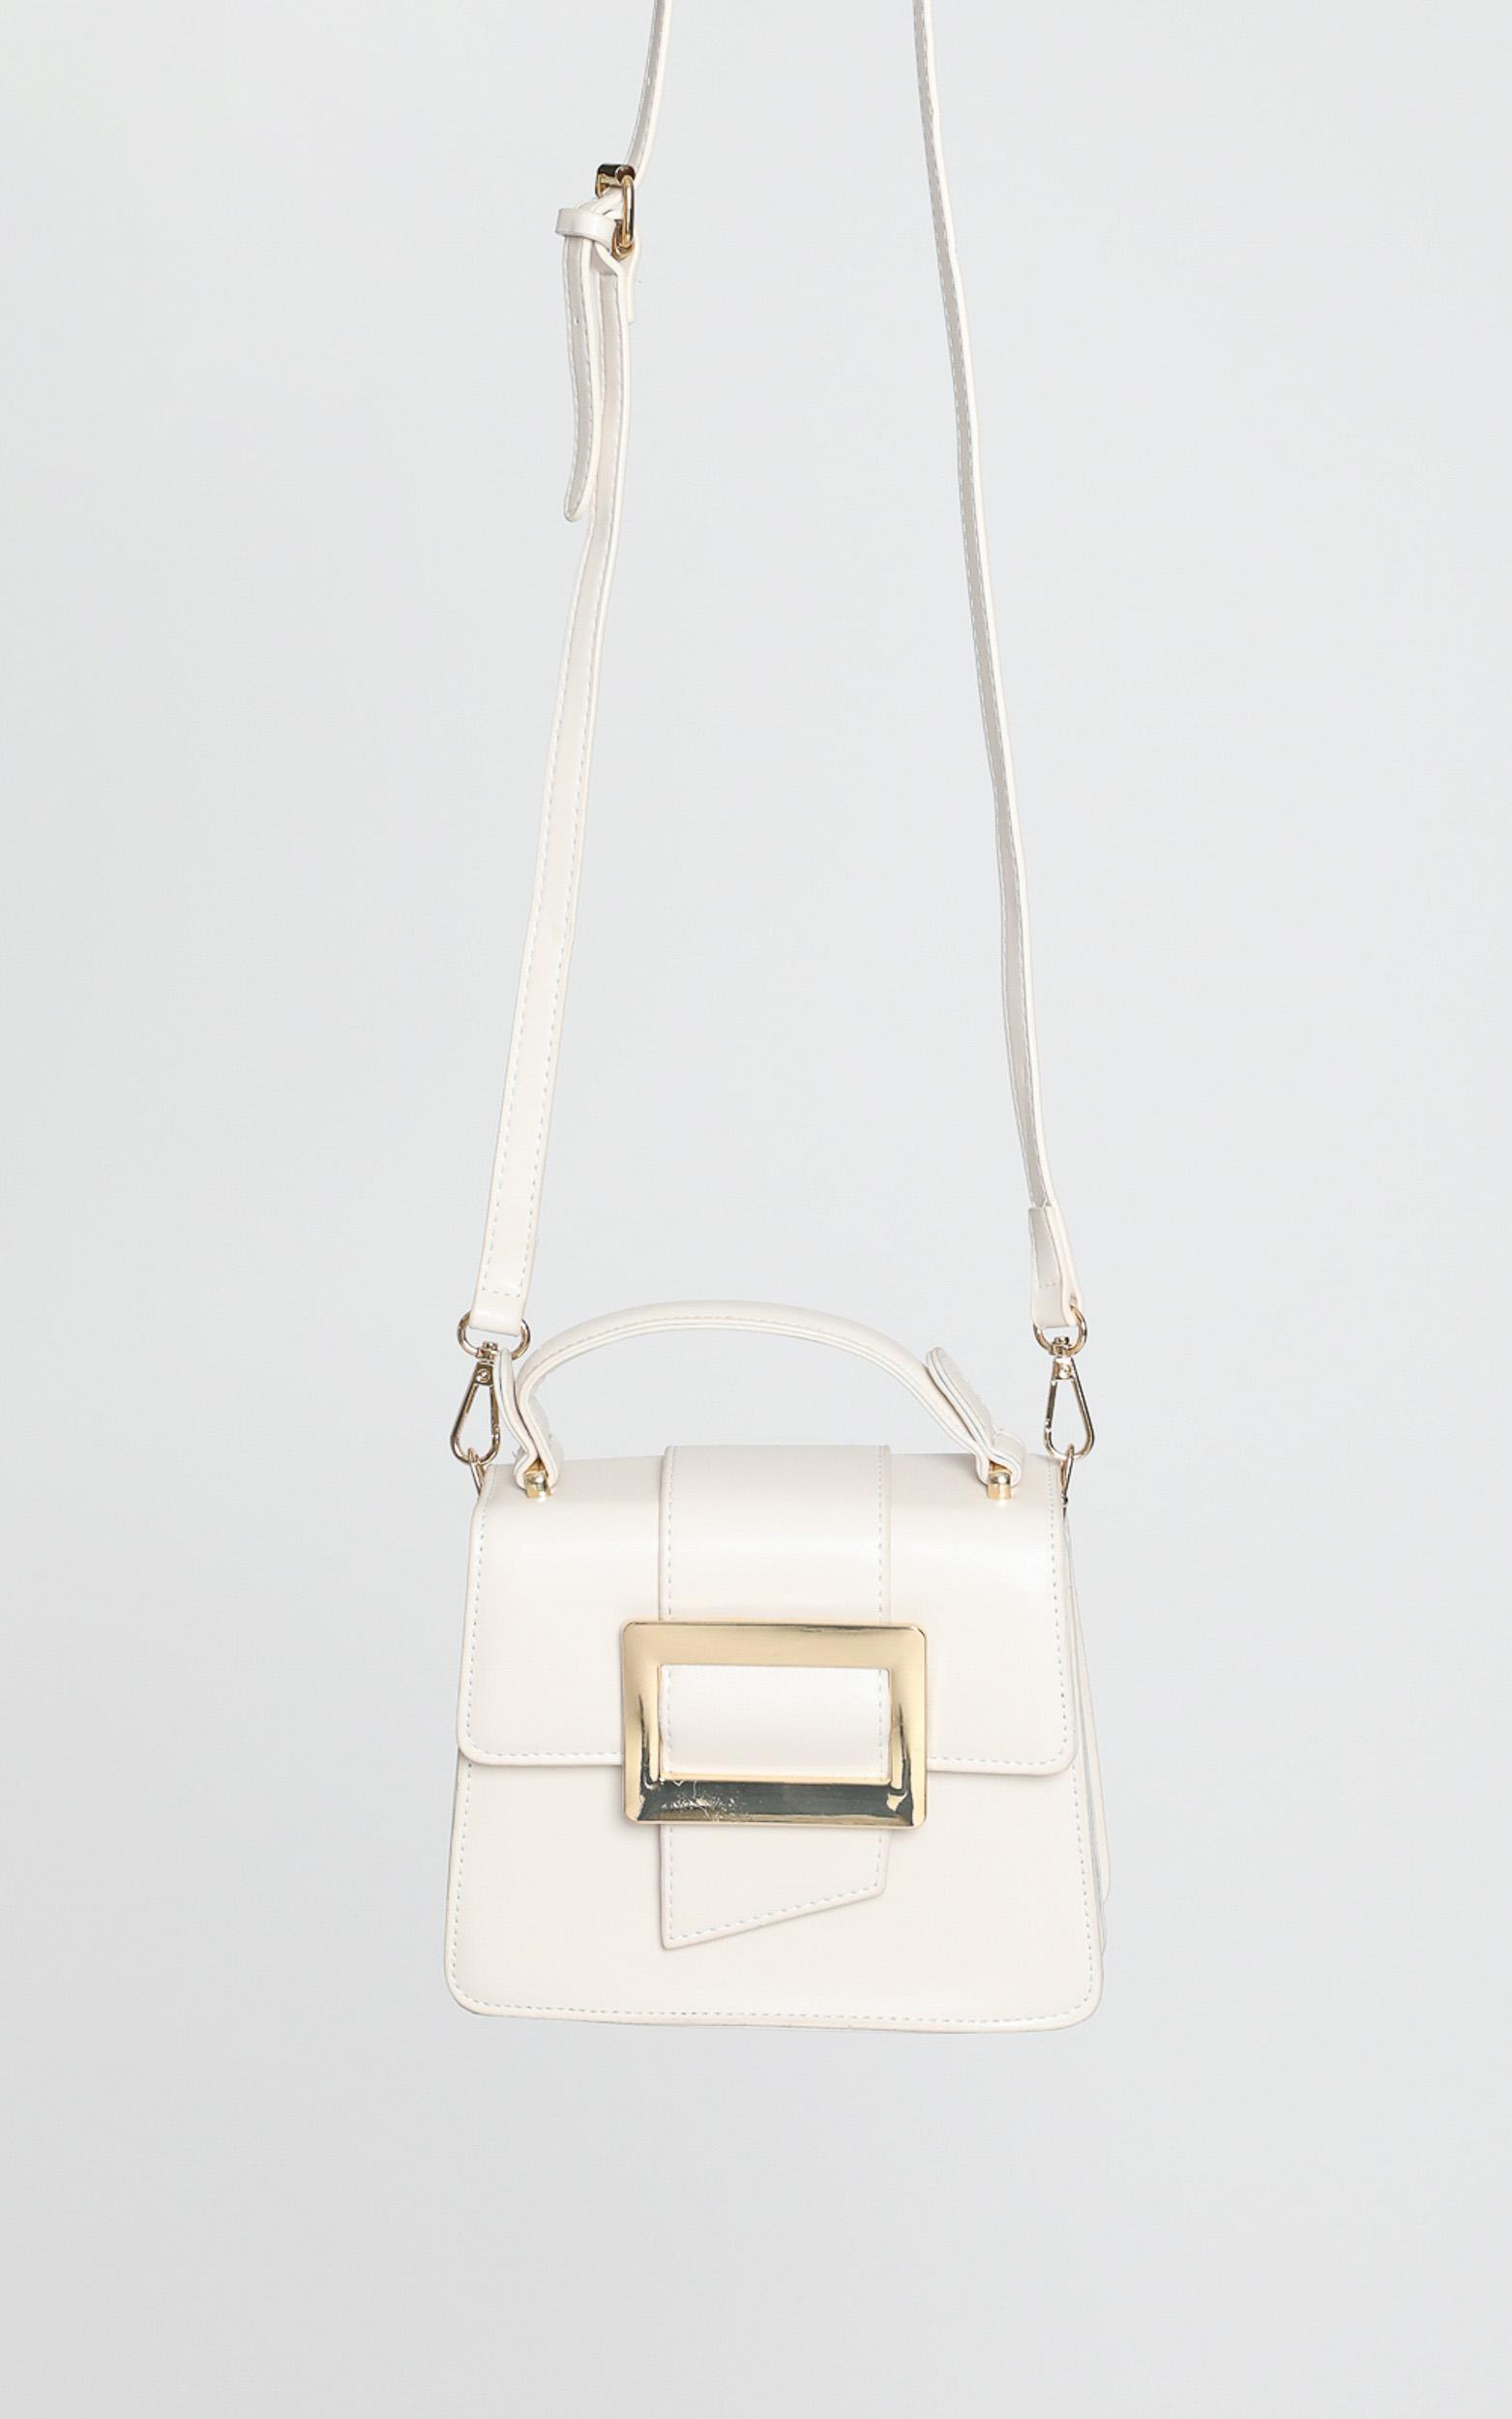 In Time Buckle Sling Bag in Beige and Gold, , hi-res image number null